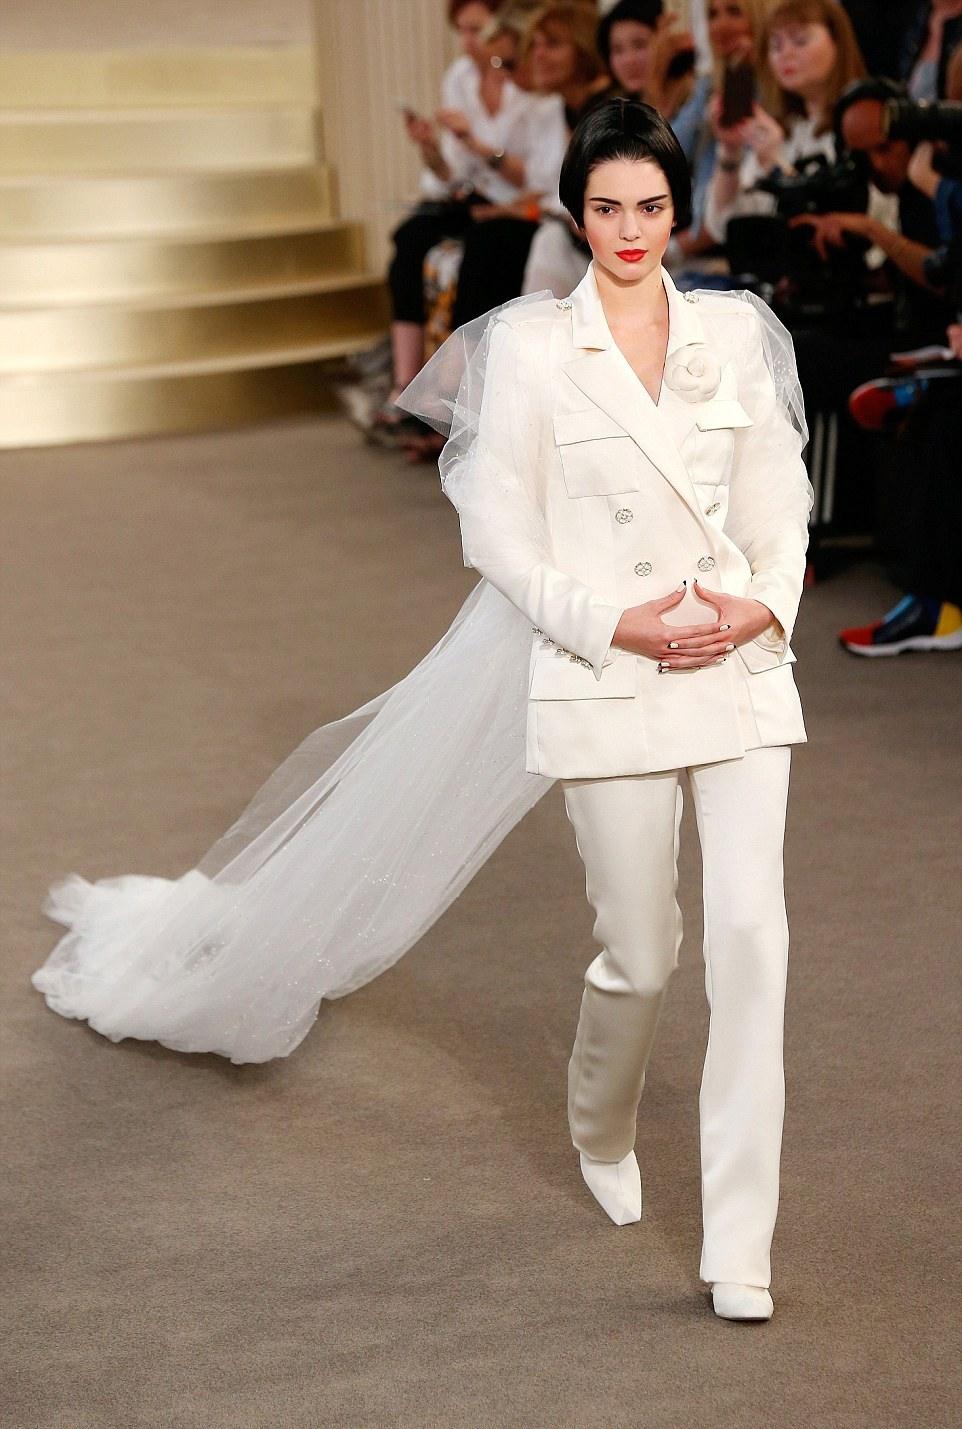 Kendall Jenner walks the Chanel Fall 2015 Paris Couture Show in a white suit and long veil